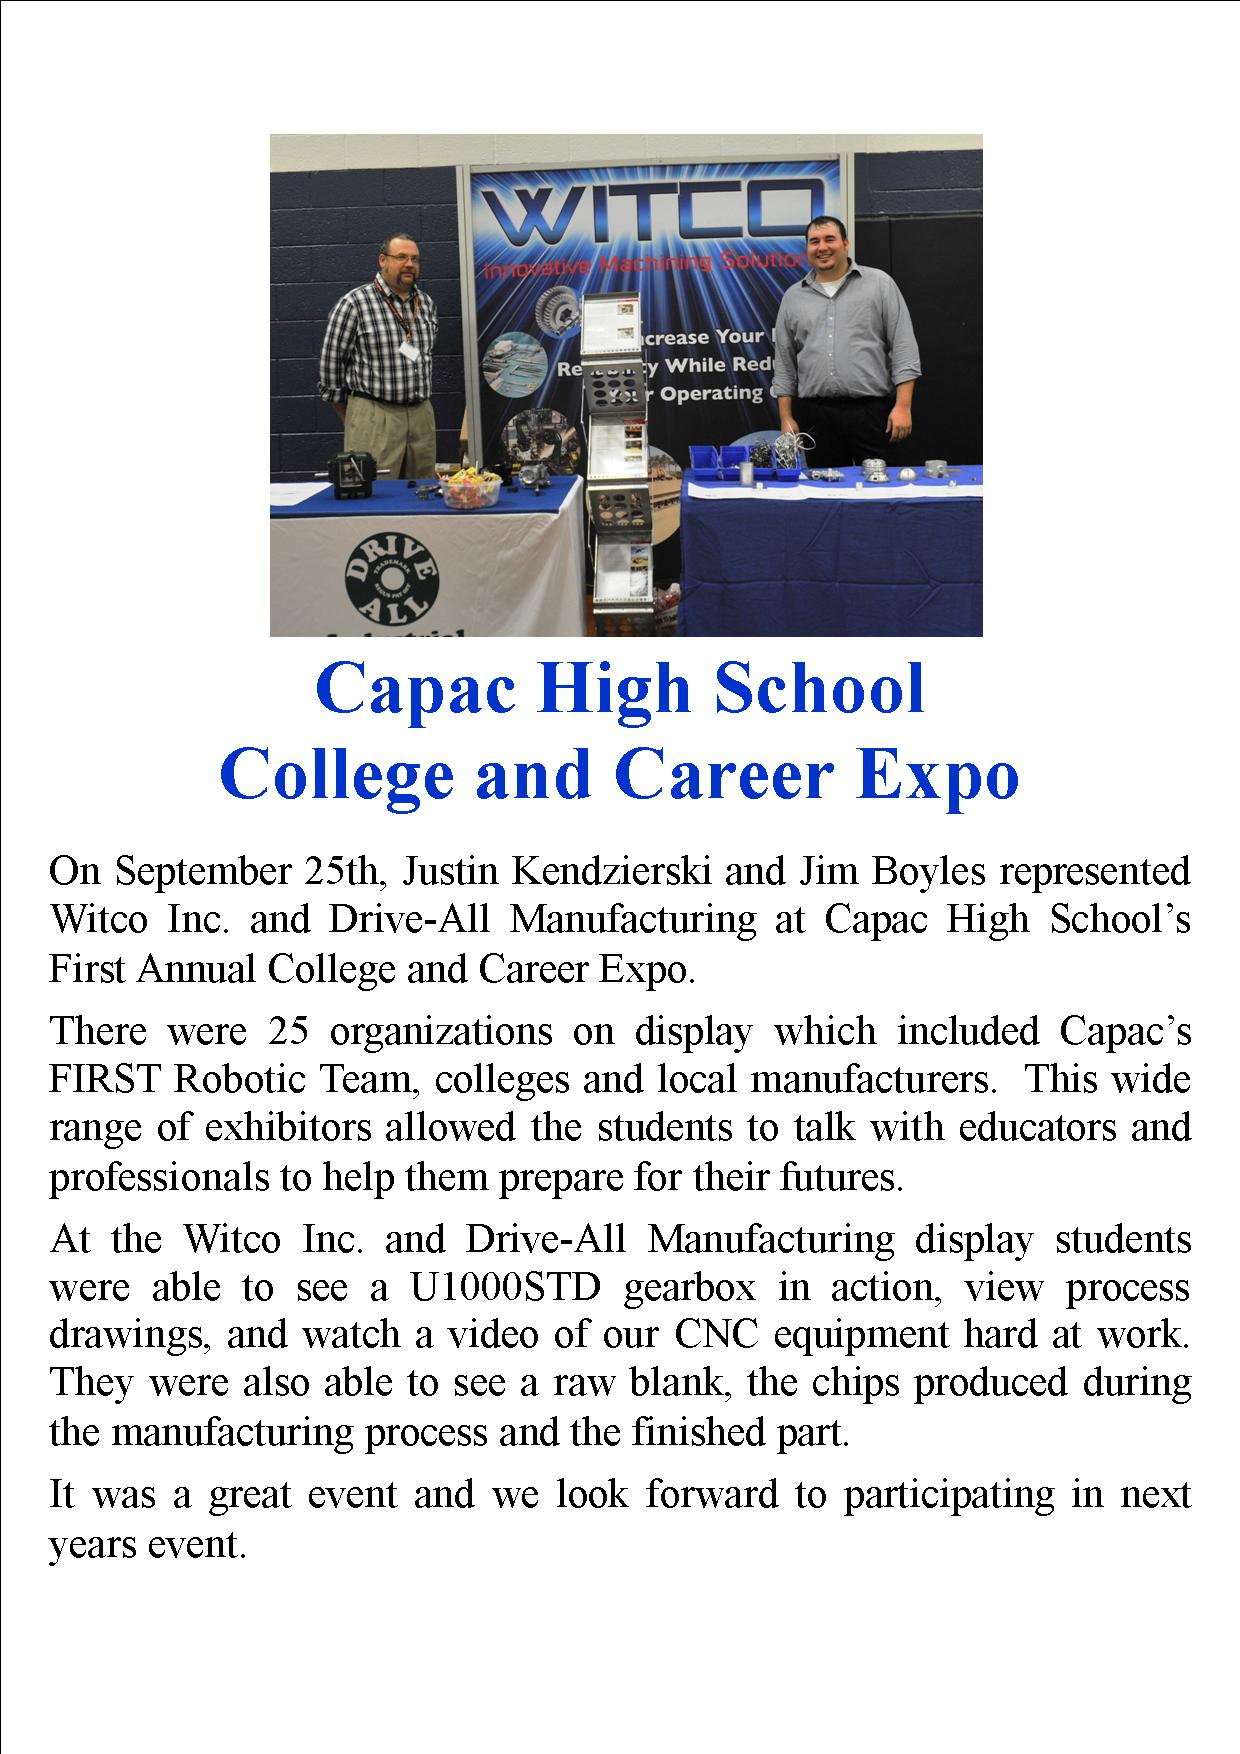 Capac Career Expo